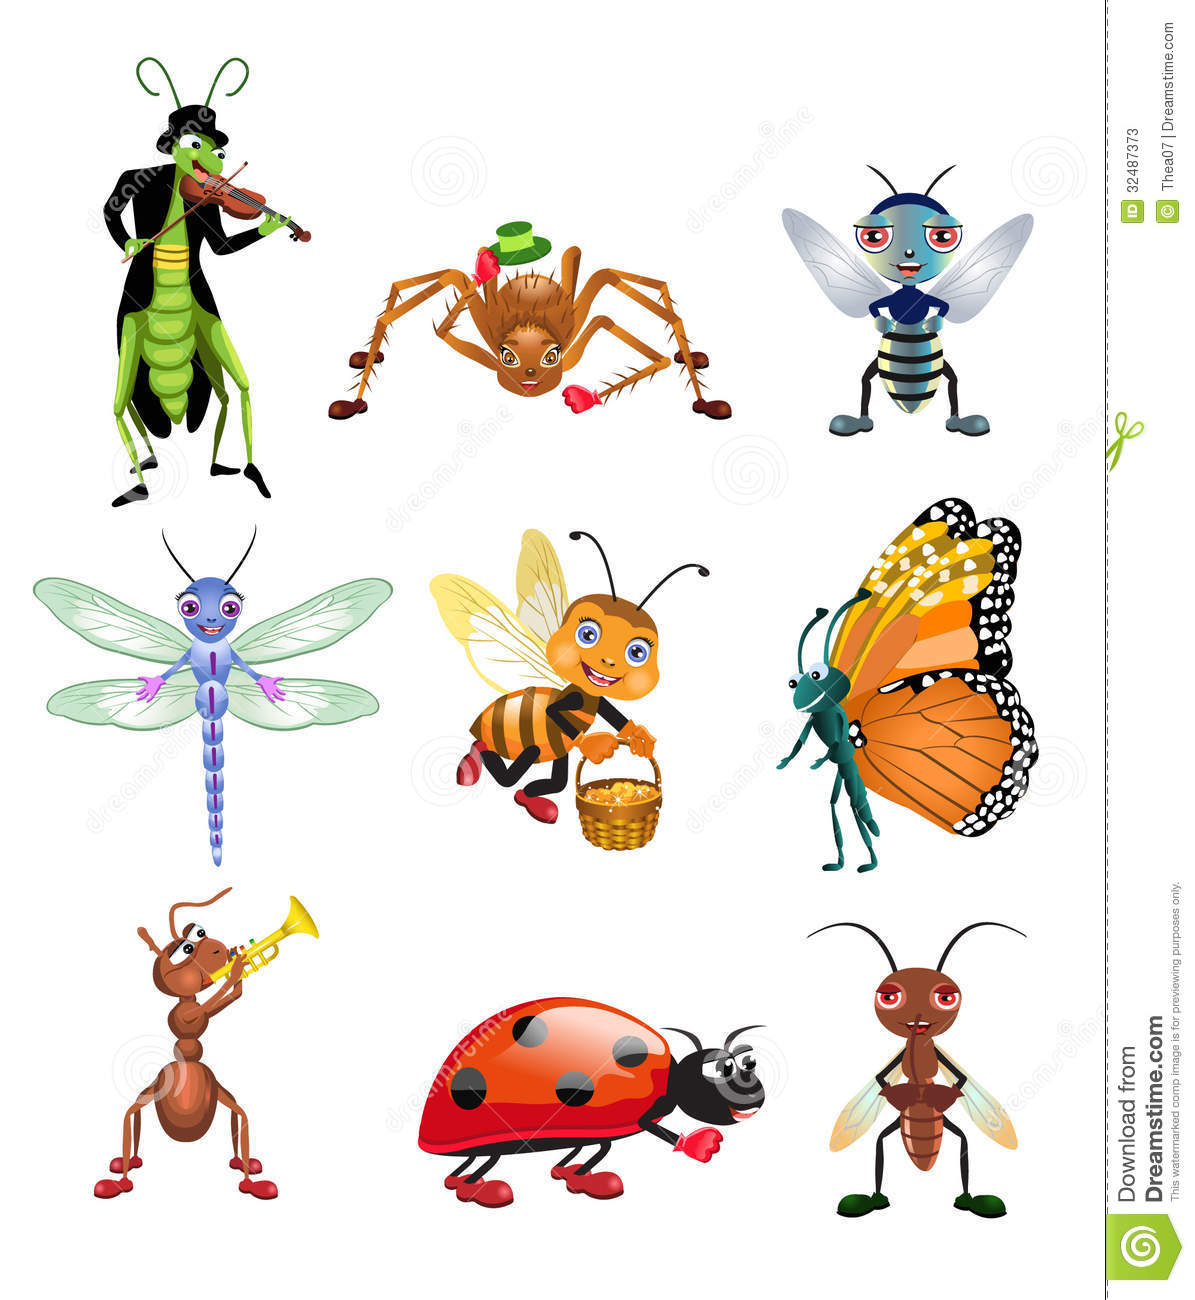 banco de jardim vetor : banco de jardim vetor:Vector Insect Cartoon